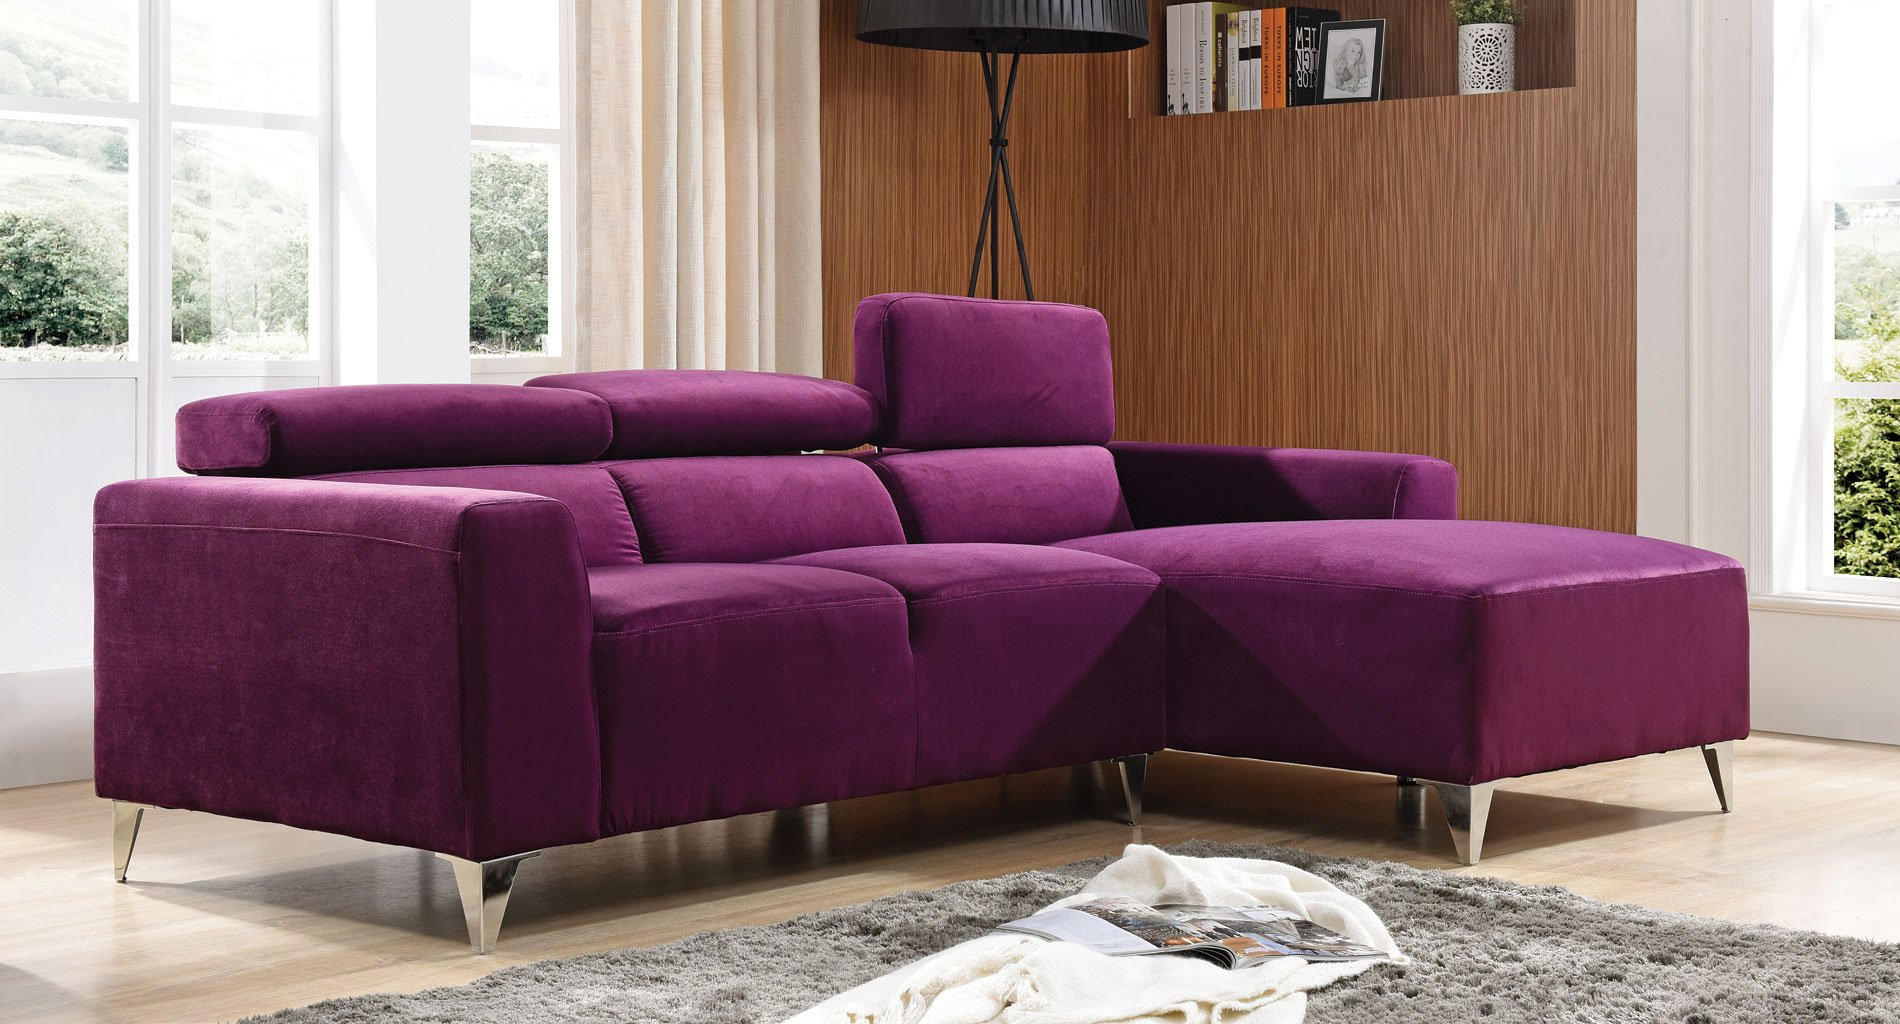 G192 Sectional (Purple)